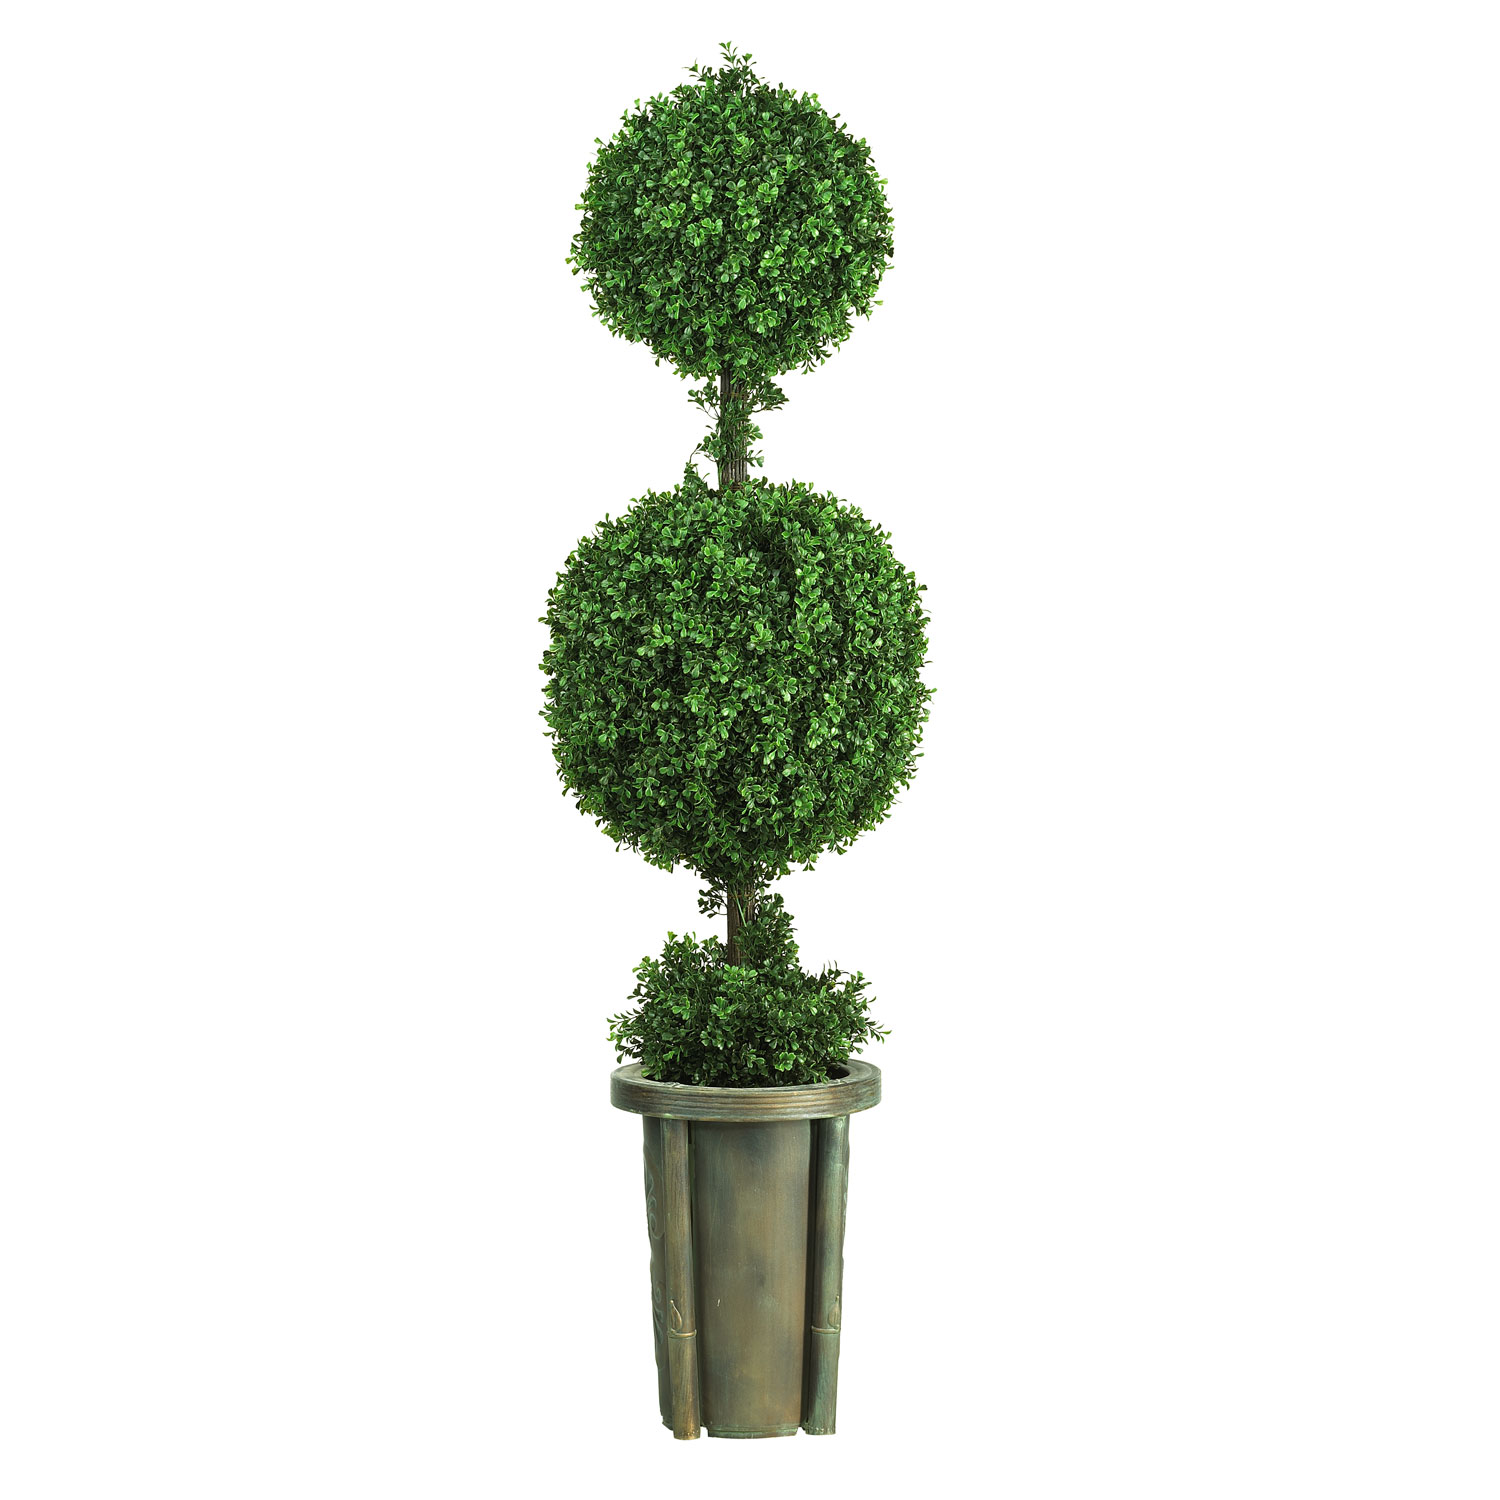 5 foot Double Ball Leucodendron Topiary in Decorative Vase | 5221